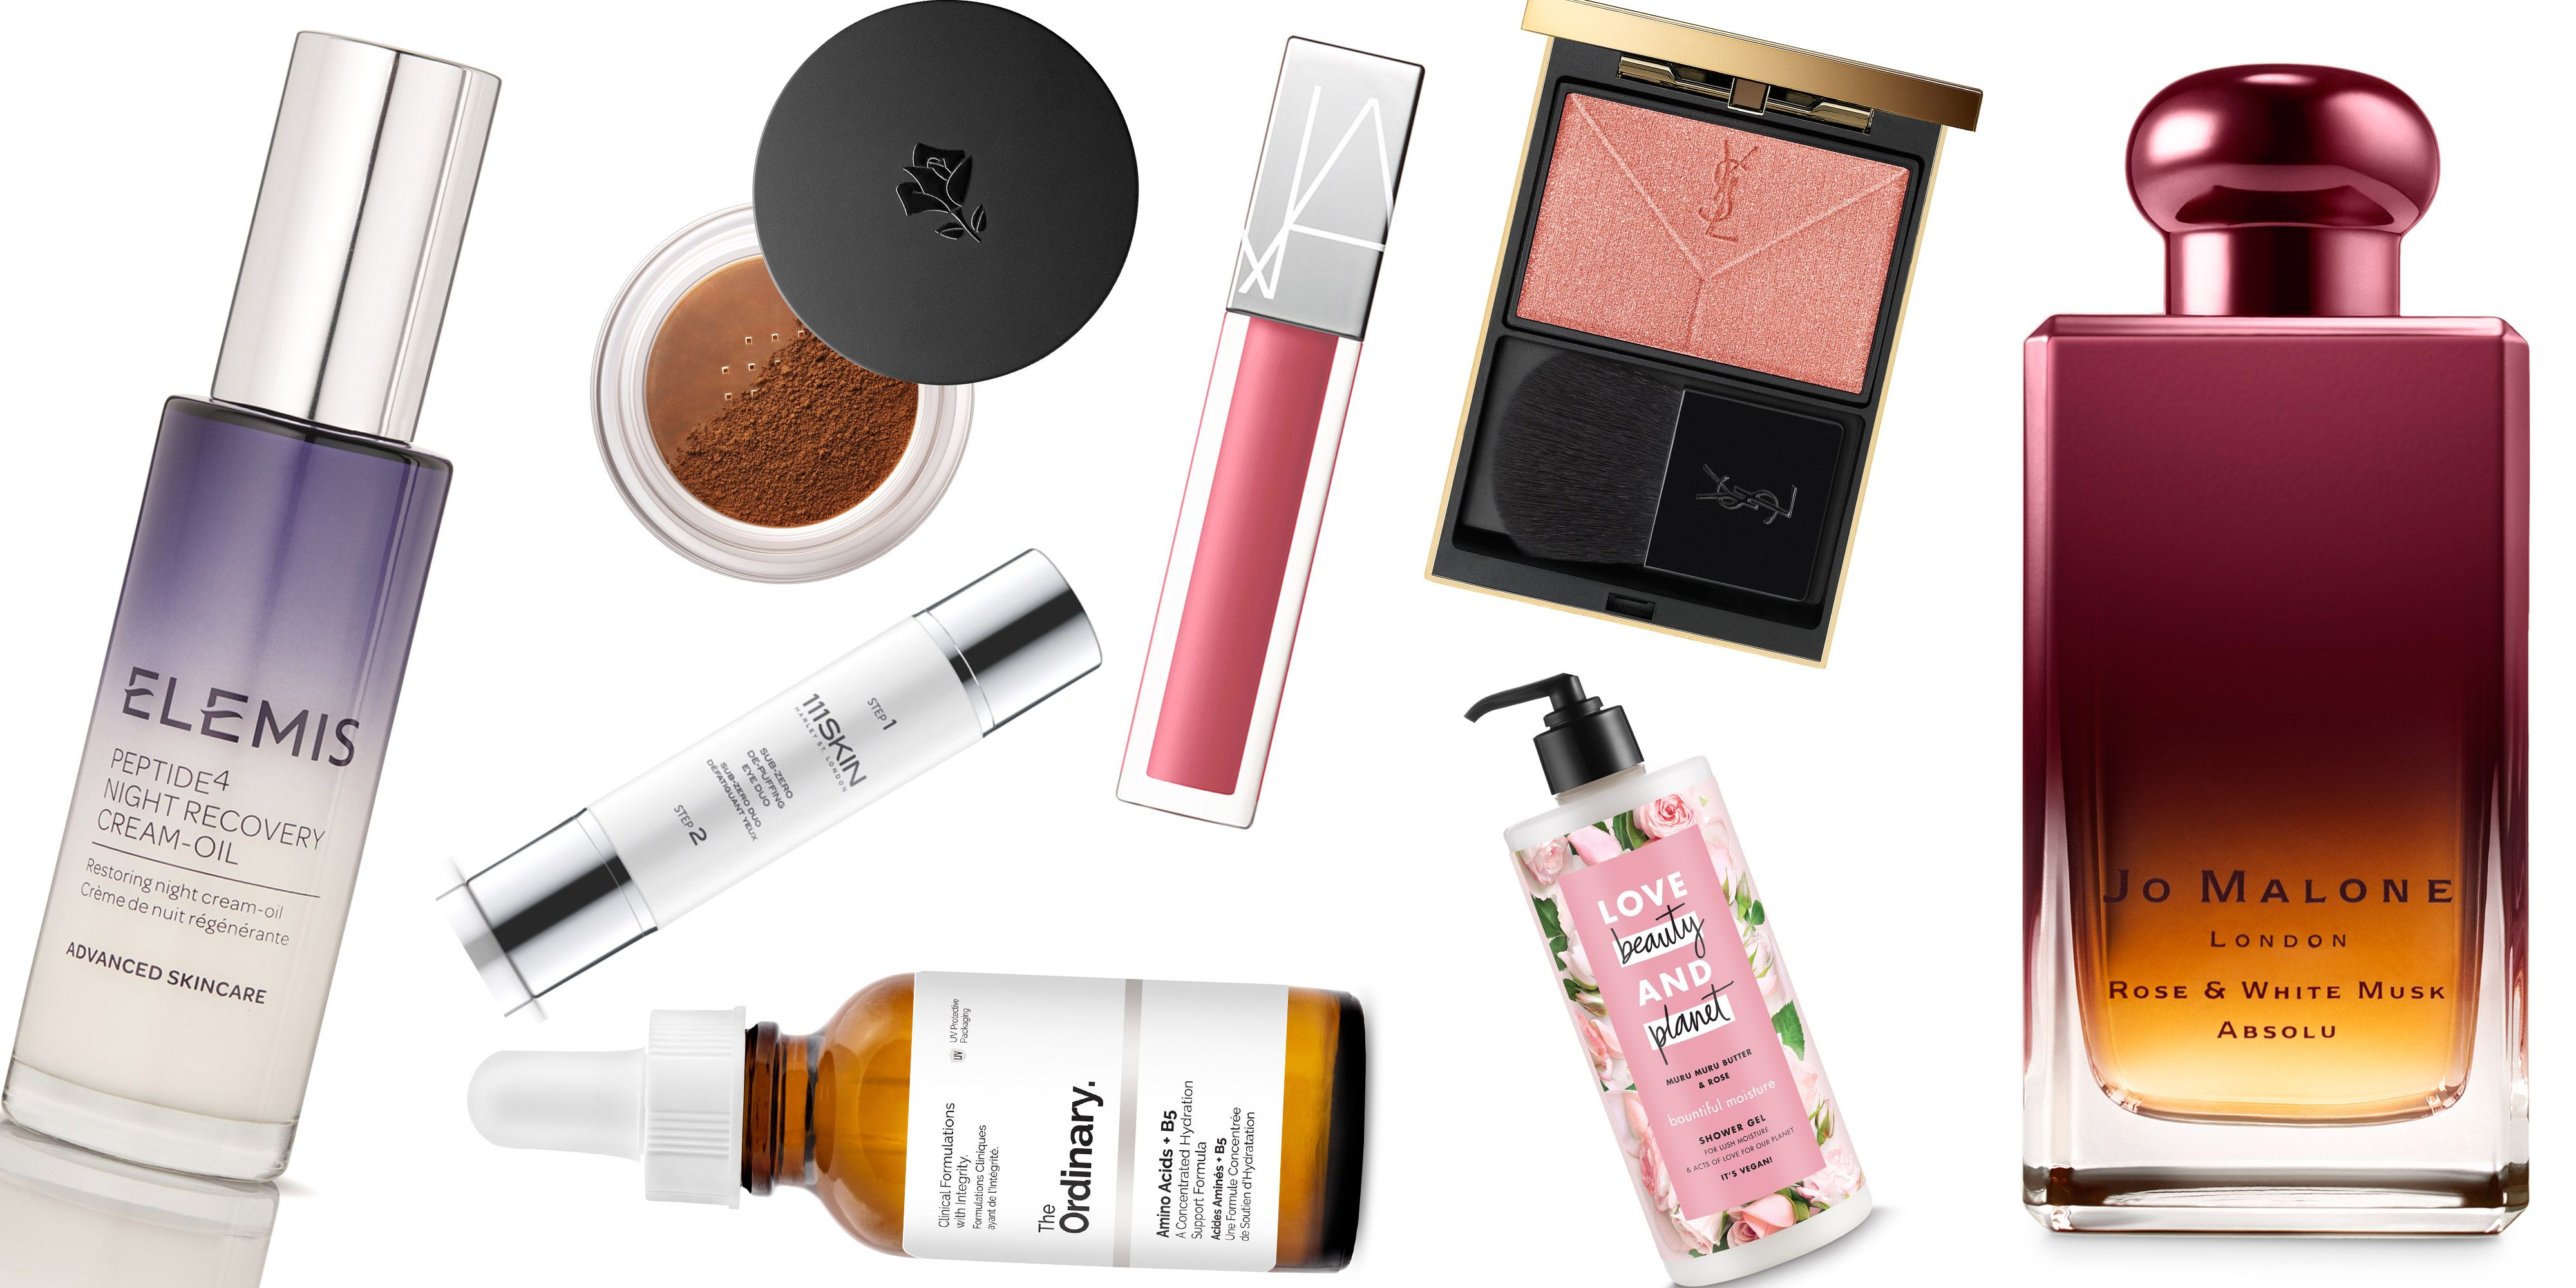 August beauty essentials and launches